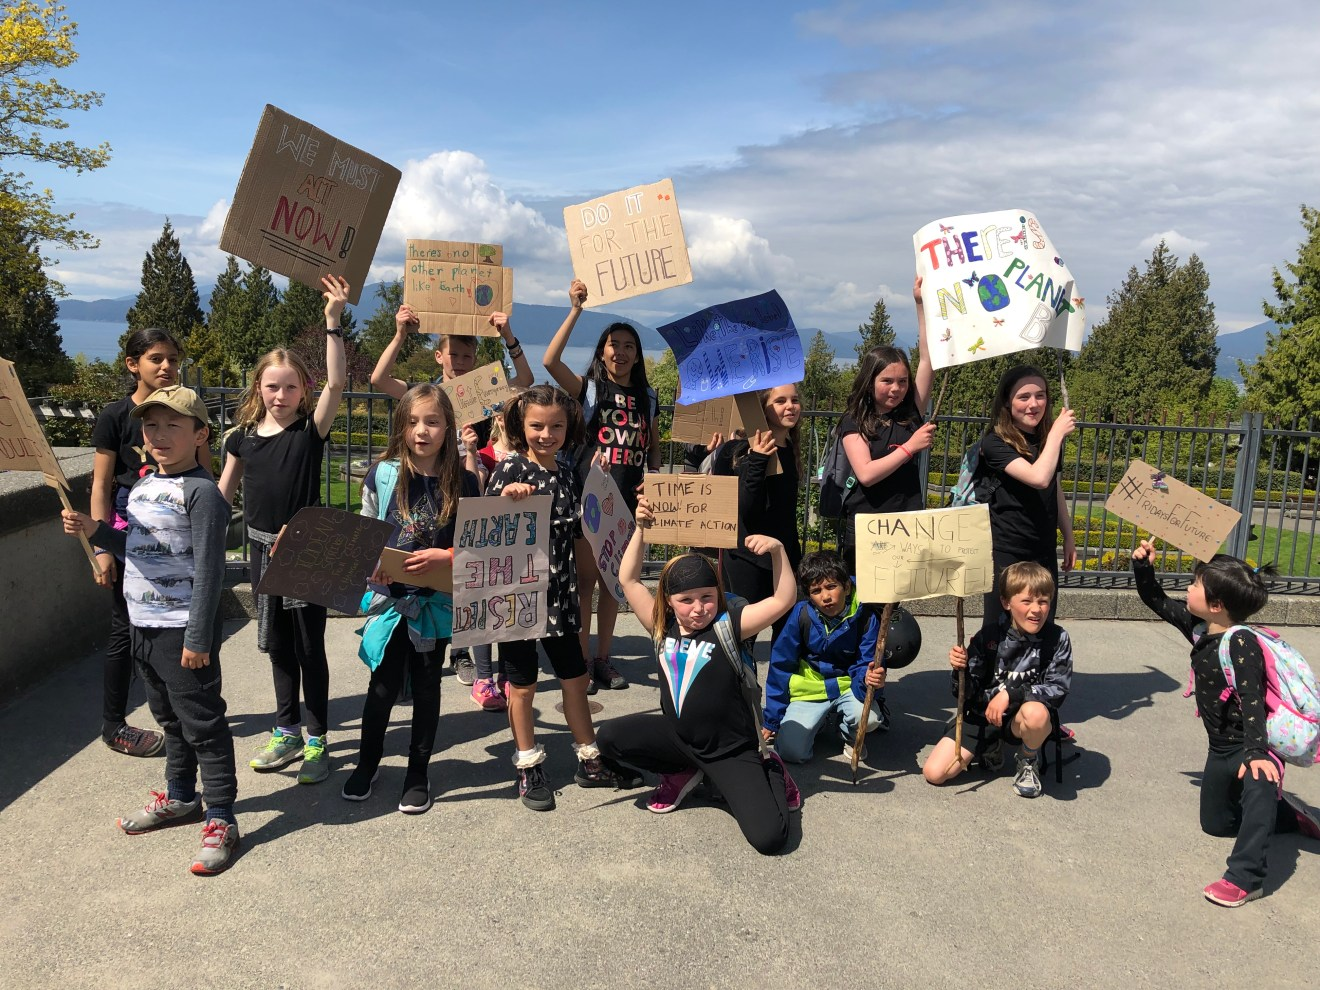 Join Climate Action Day at U-Hill Elementary School - May 24th, 2019